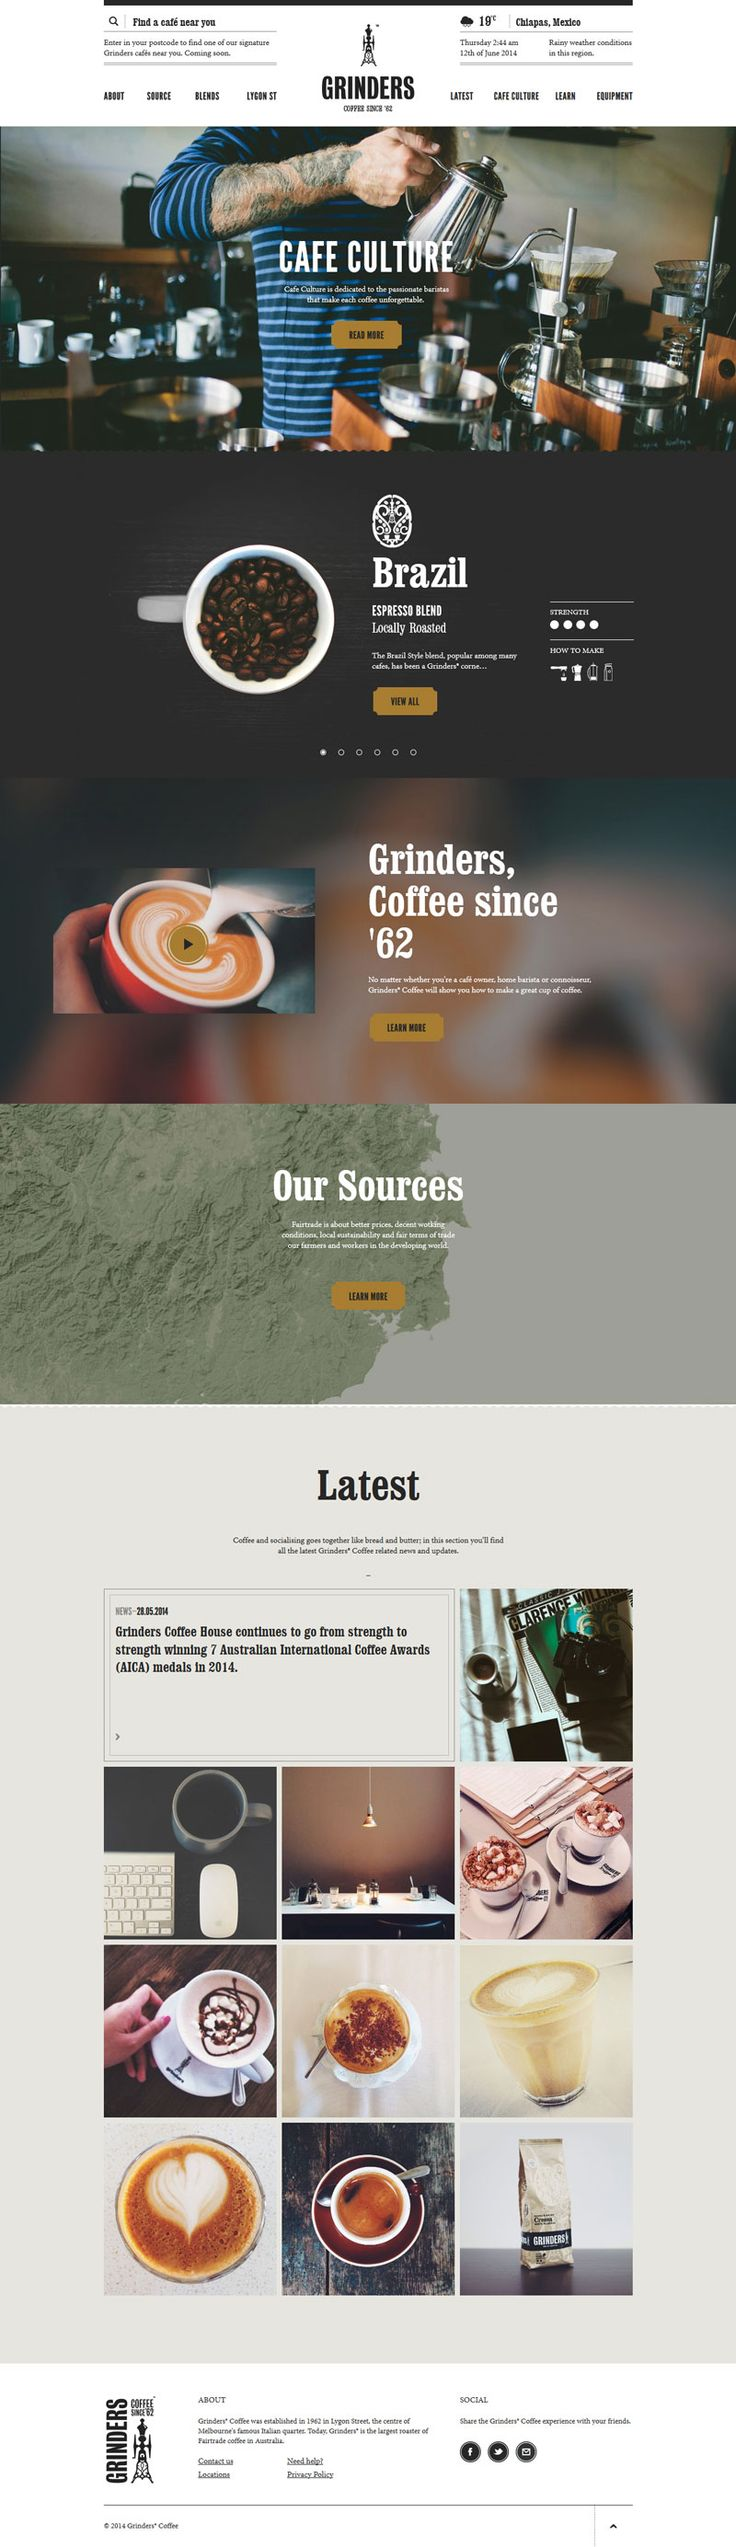 Grinders Coffee. Coffee and socializing goes together like bread and butter. #coffee #webdesign #design